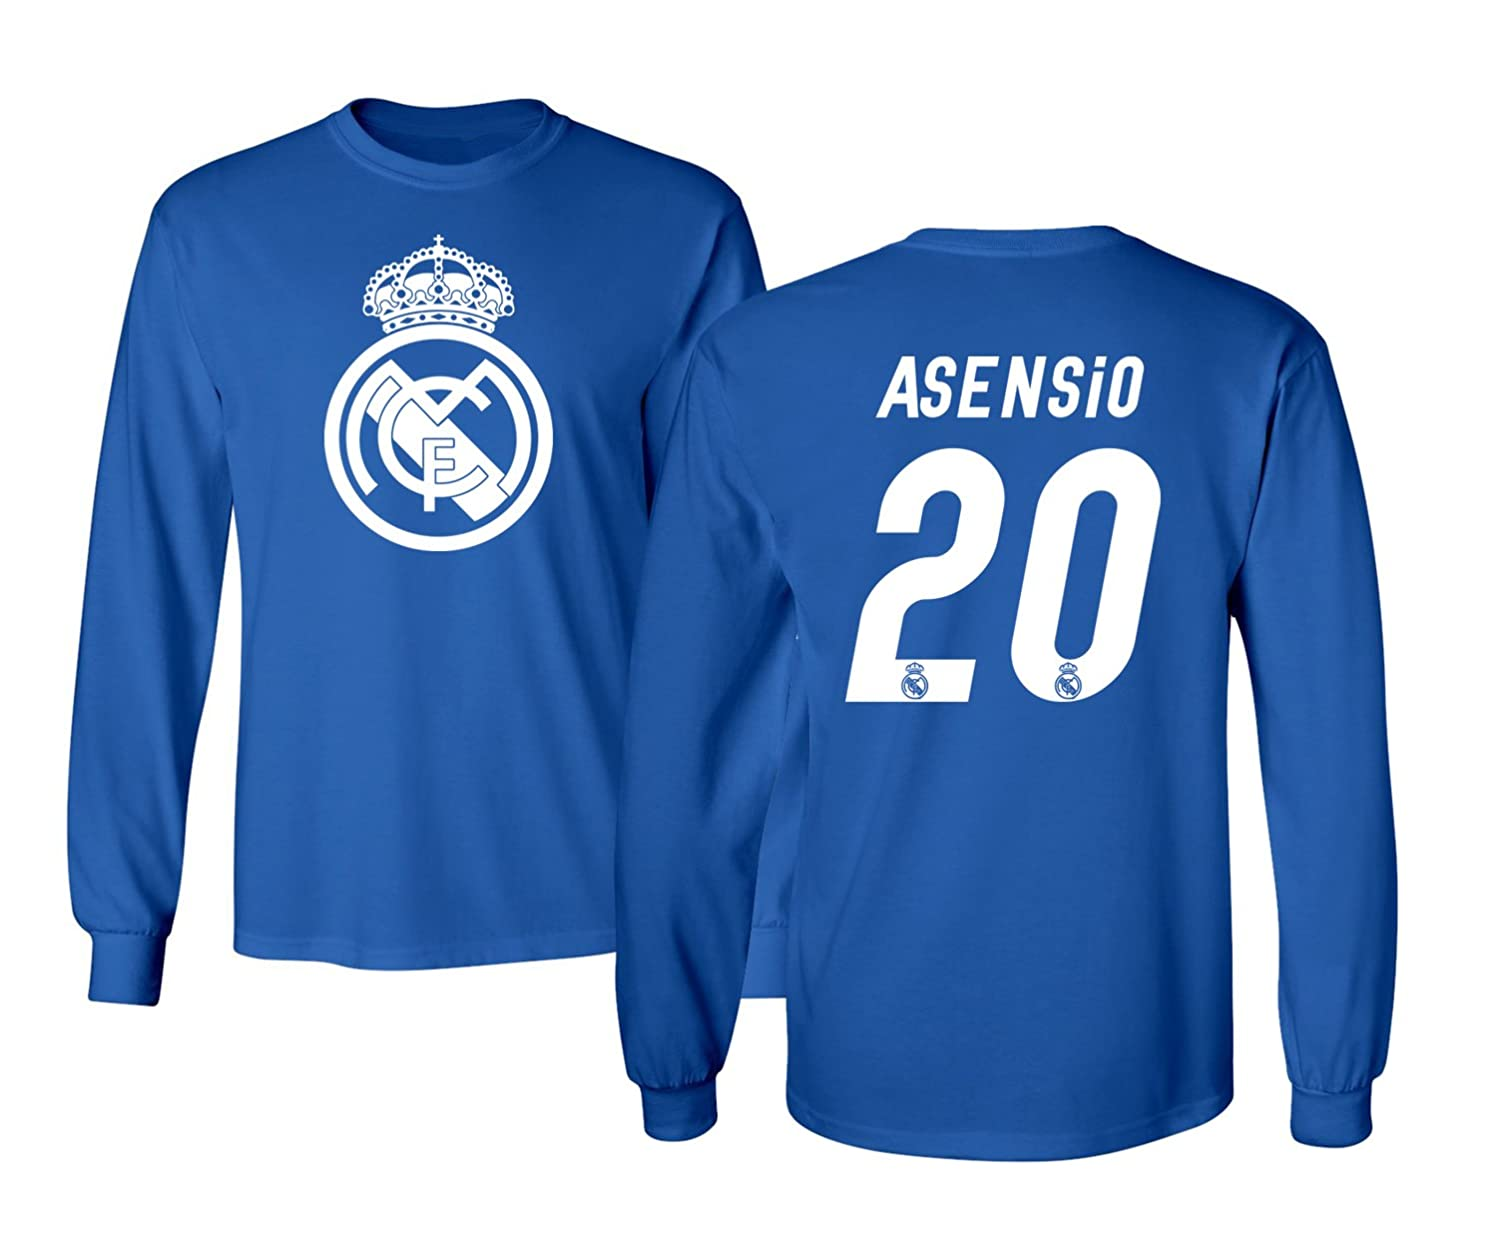 Amazon.com   KING THREADS Real Madrid Marco ASENSIO  20 Jersey Shirt Soccer  Football Men s Long Sleeve T-Shirt   Sports   Outdoors 0beda8af0